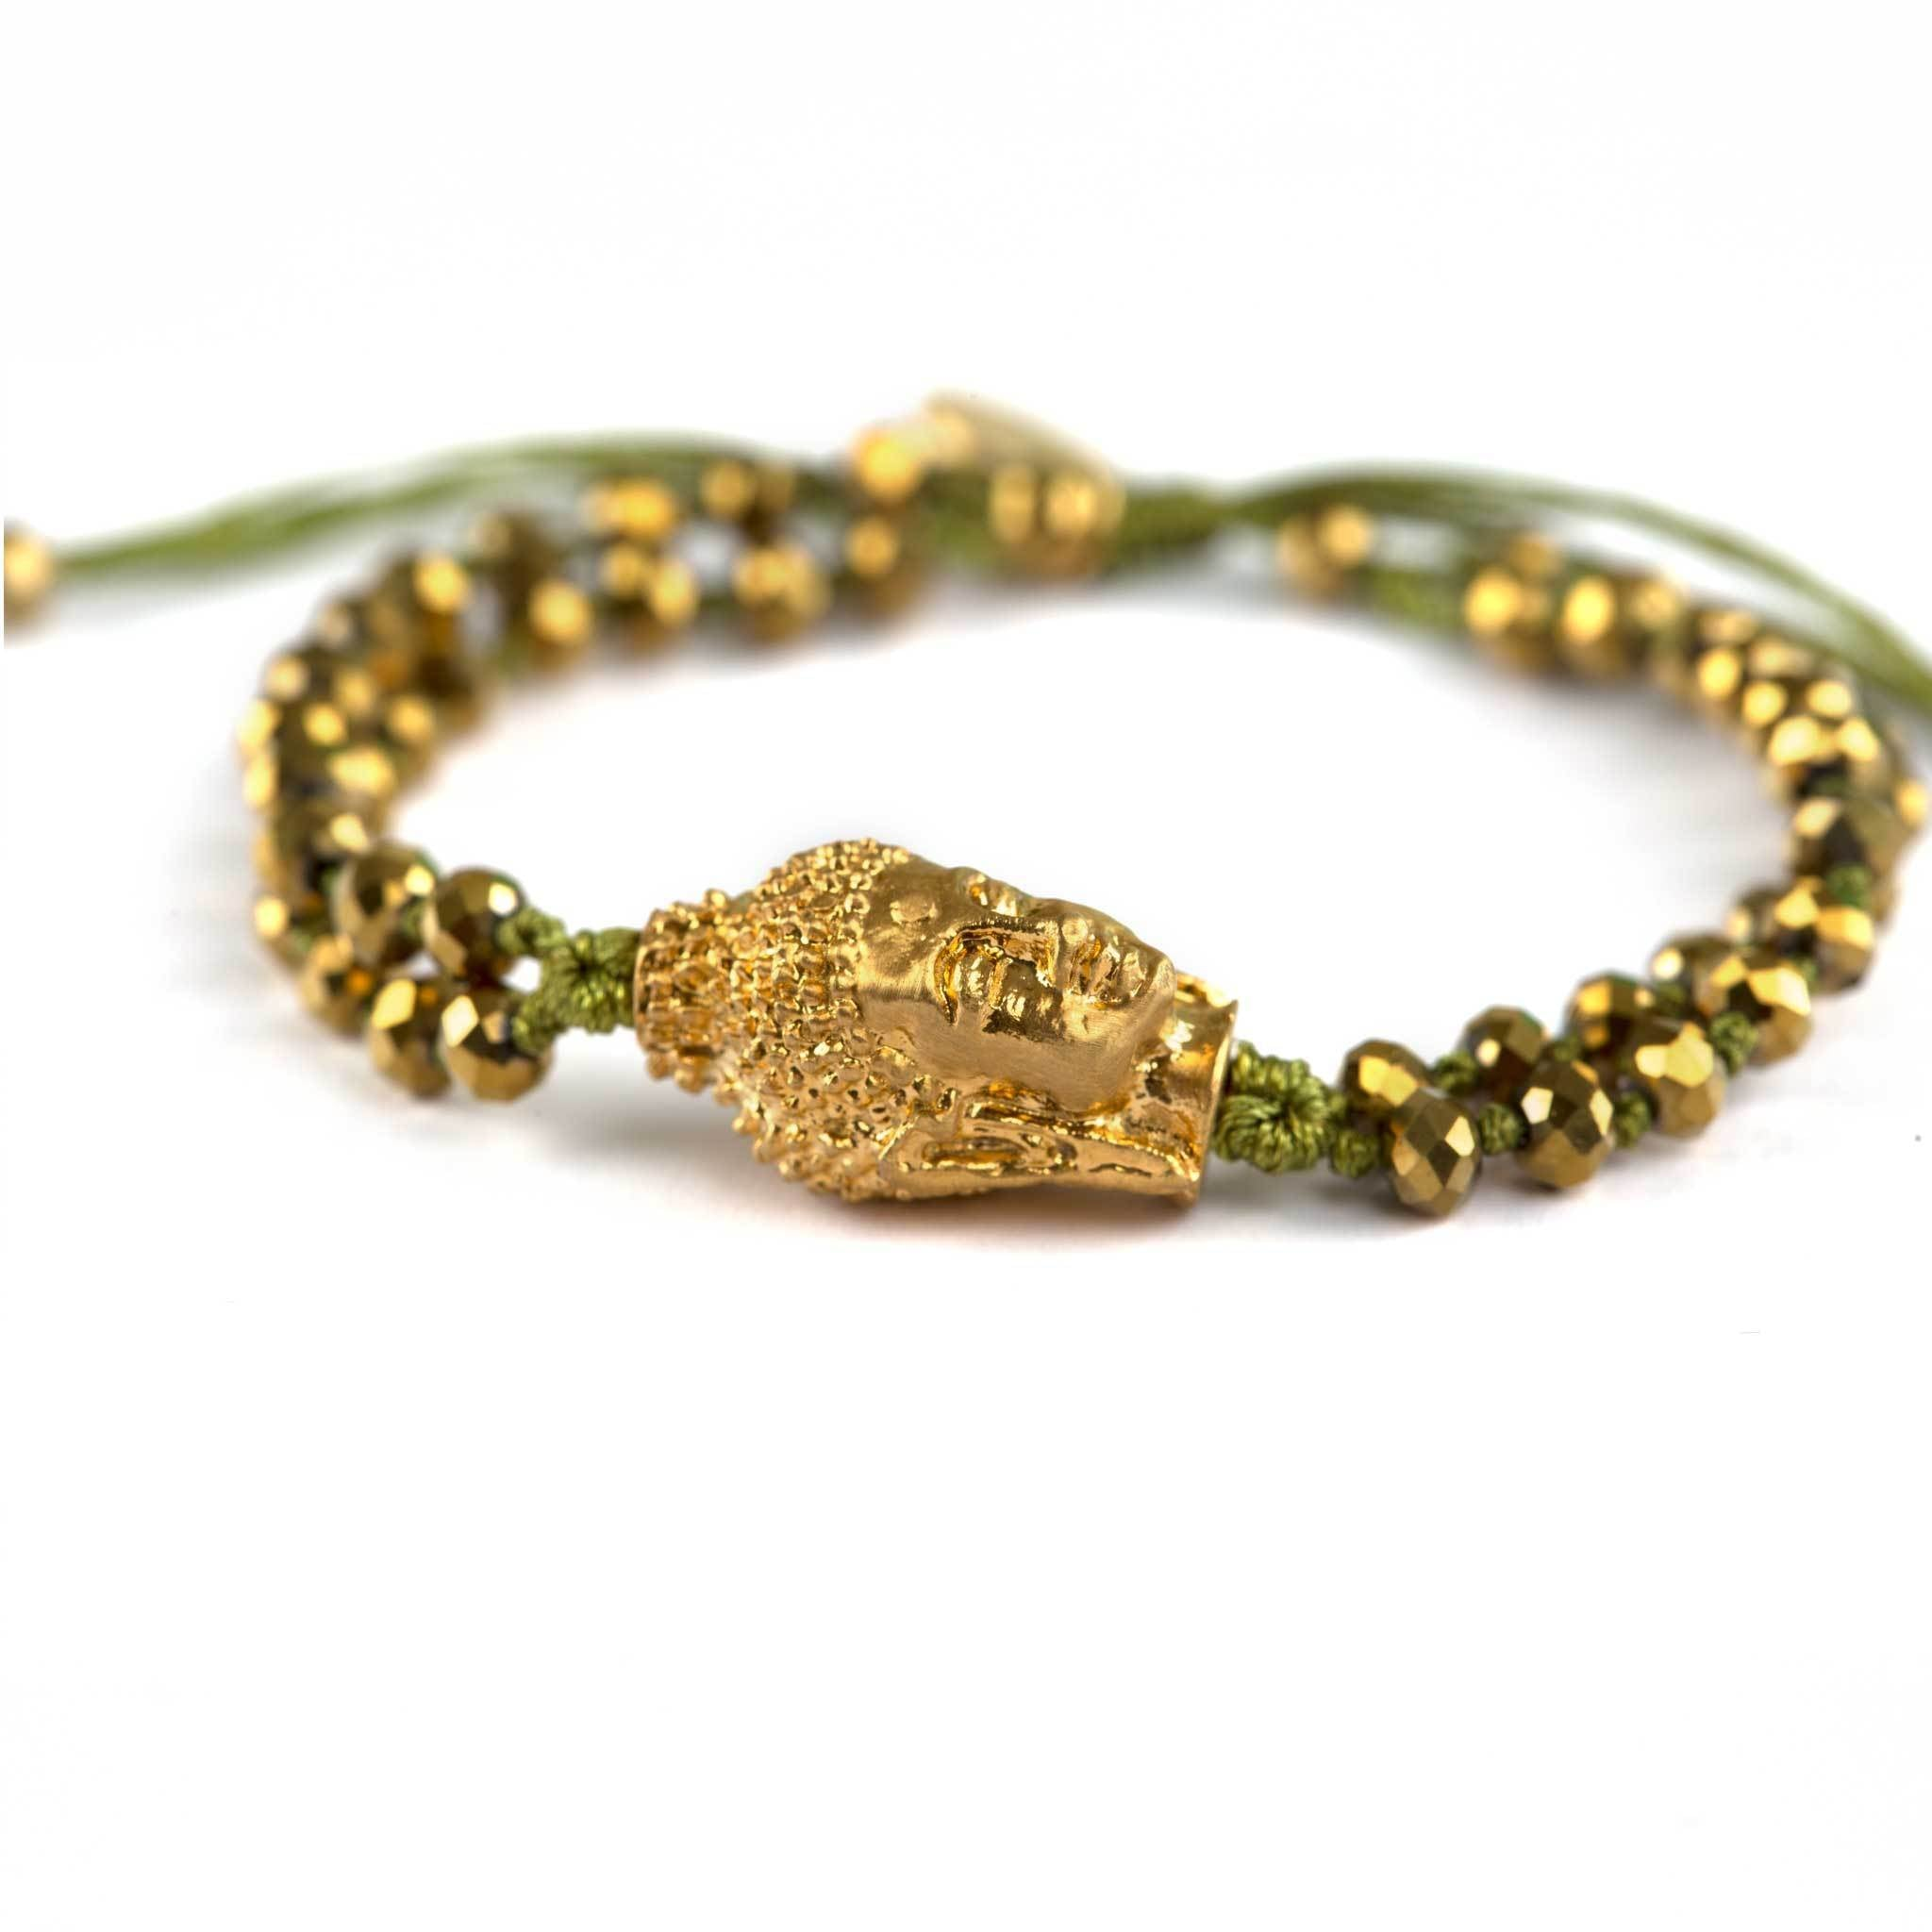 Buddha armbånd - Green/Gold fra Farmhousedesign.no